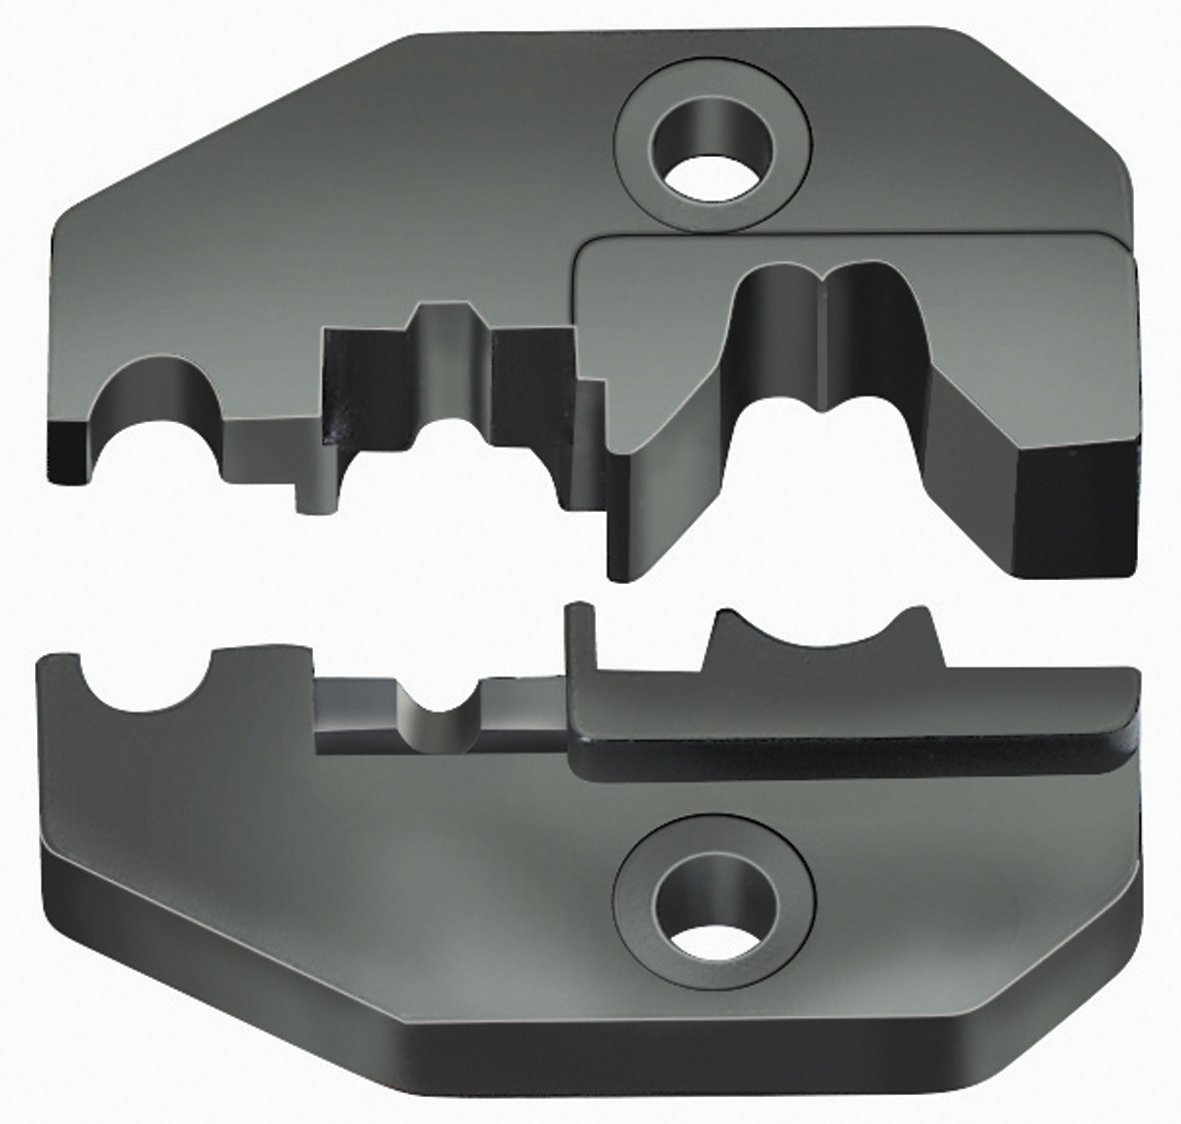 Tool Aid S and G 18929 Die Set for Spark Plug Terminal